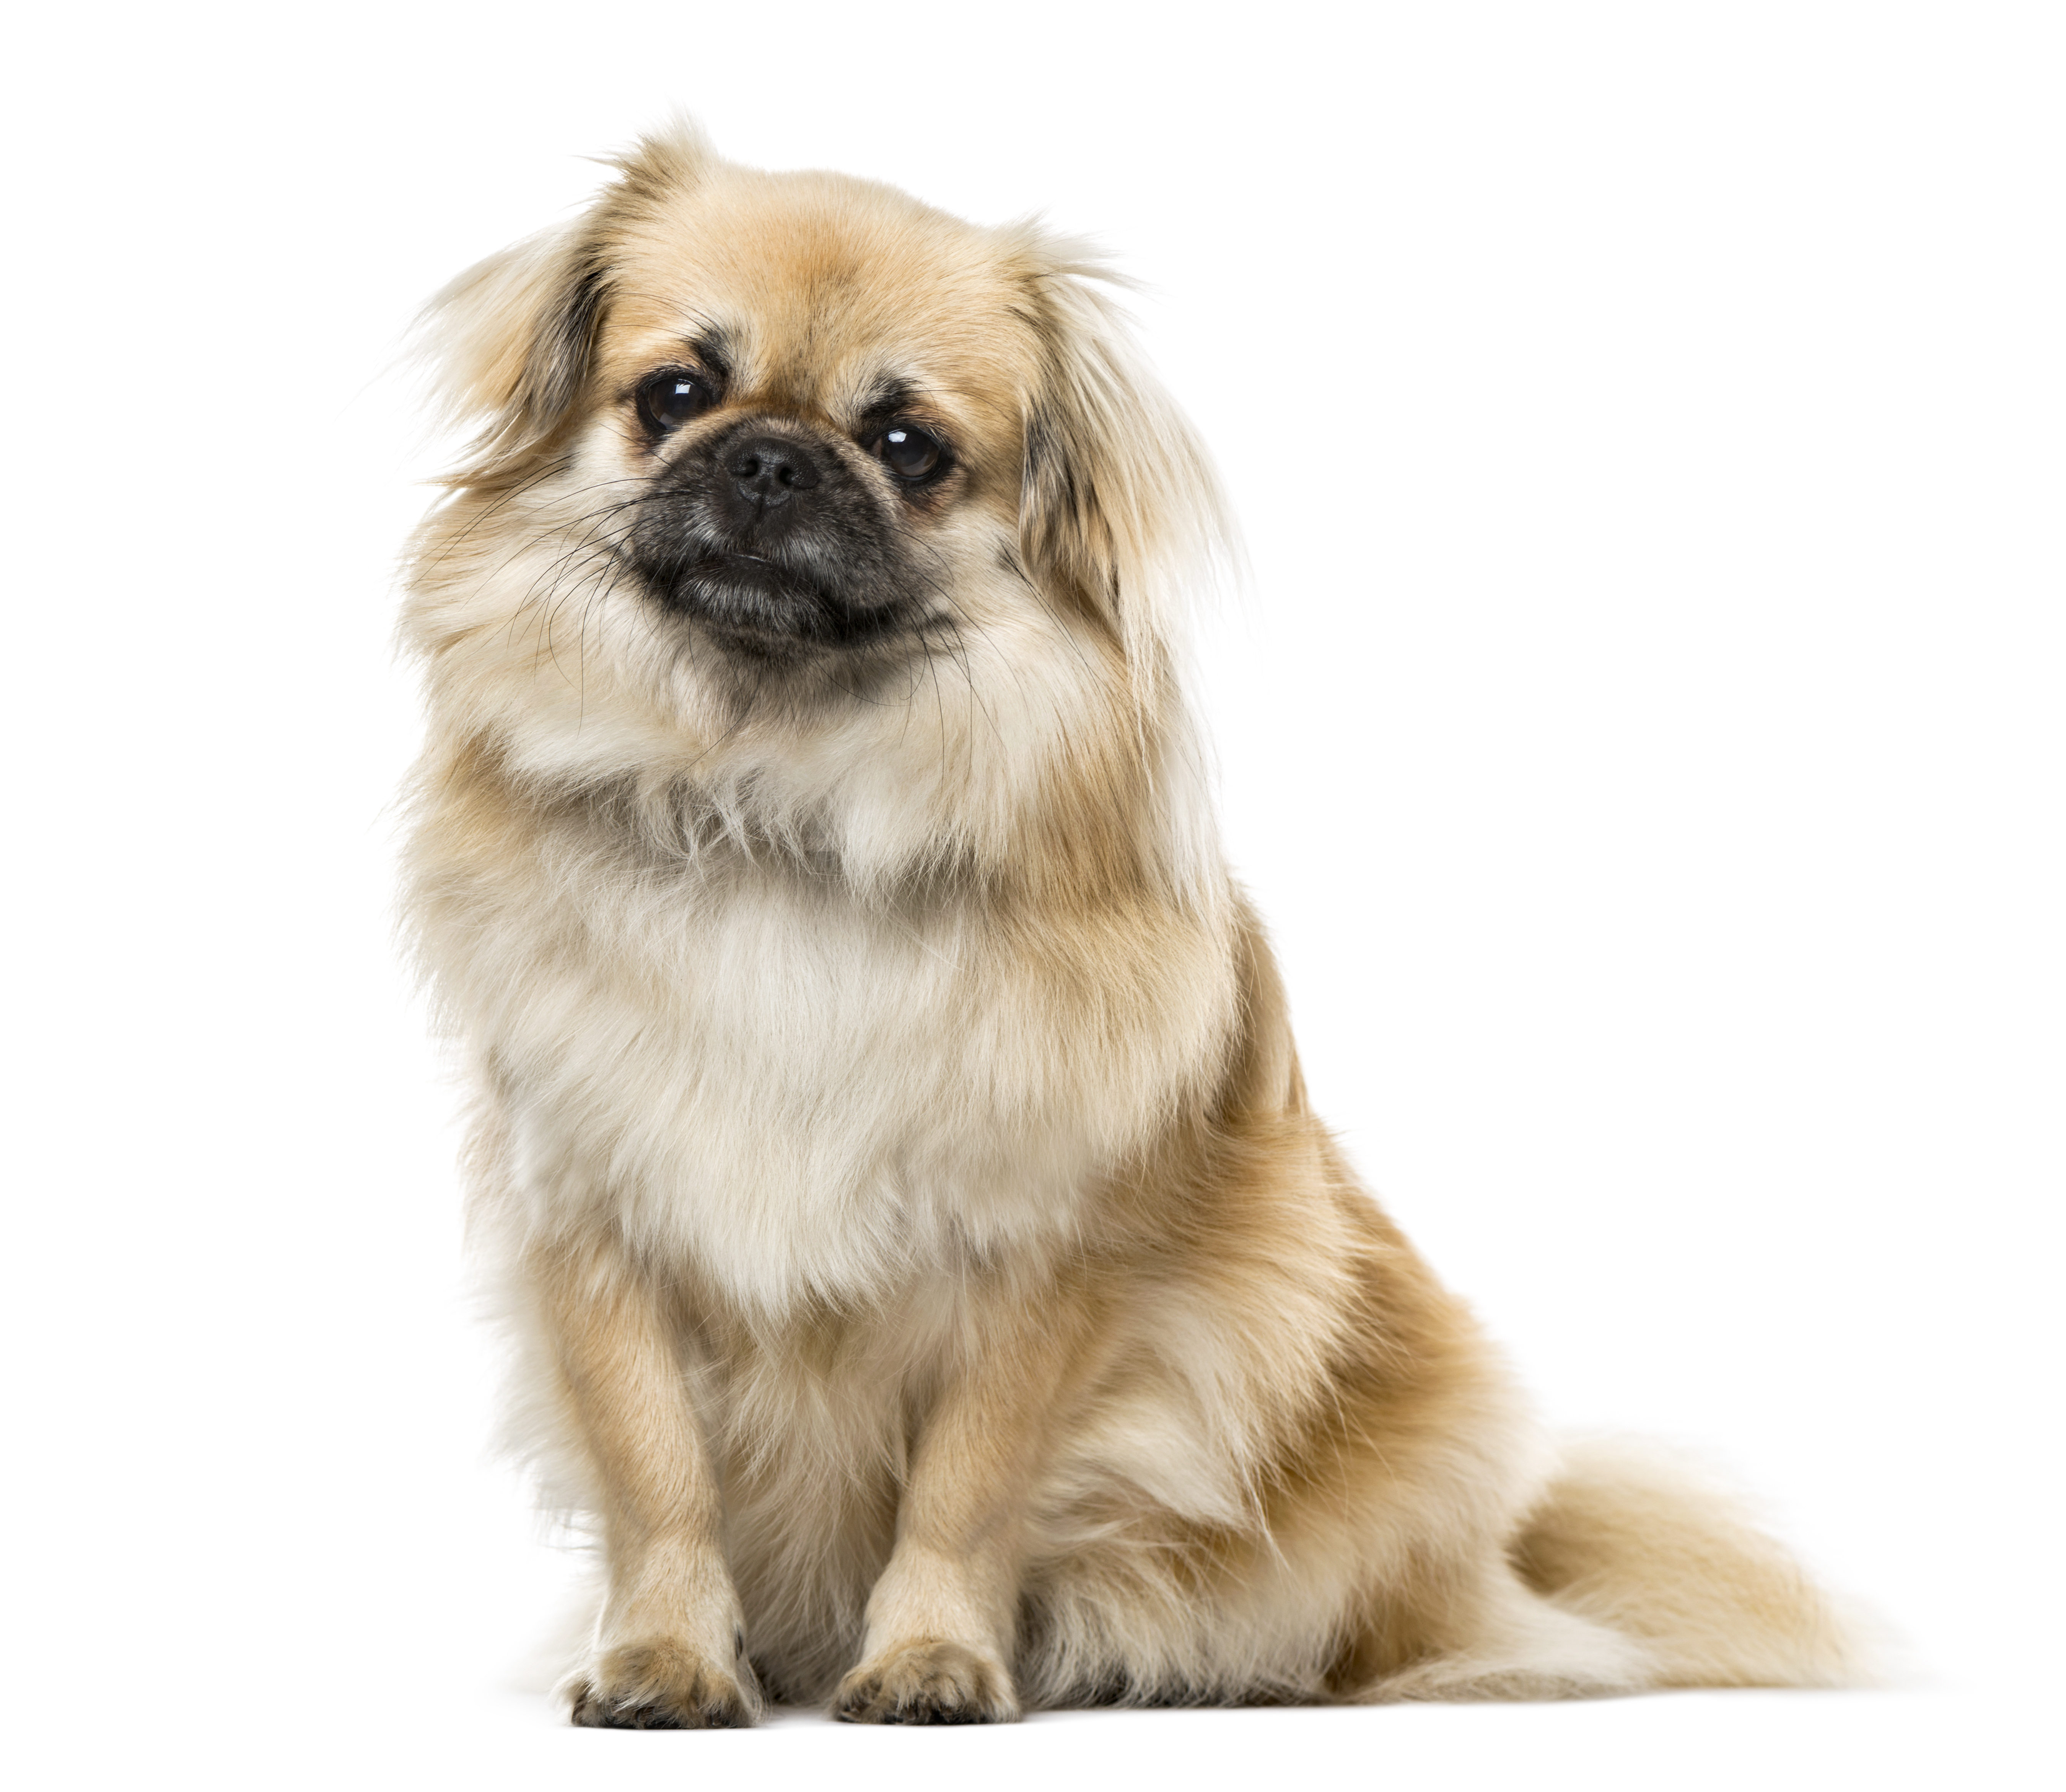 Tibetan Spaniel sitting in front of white background